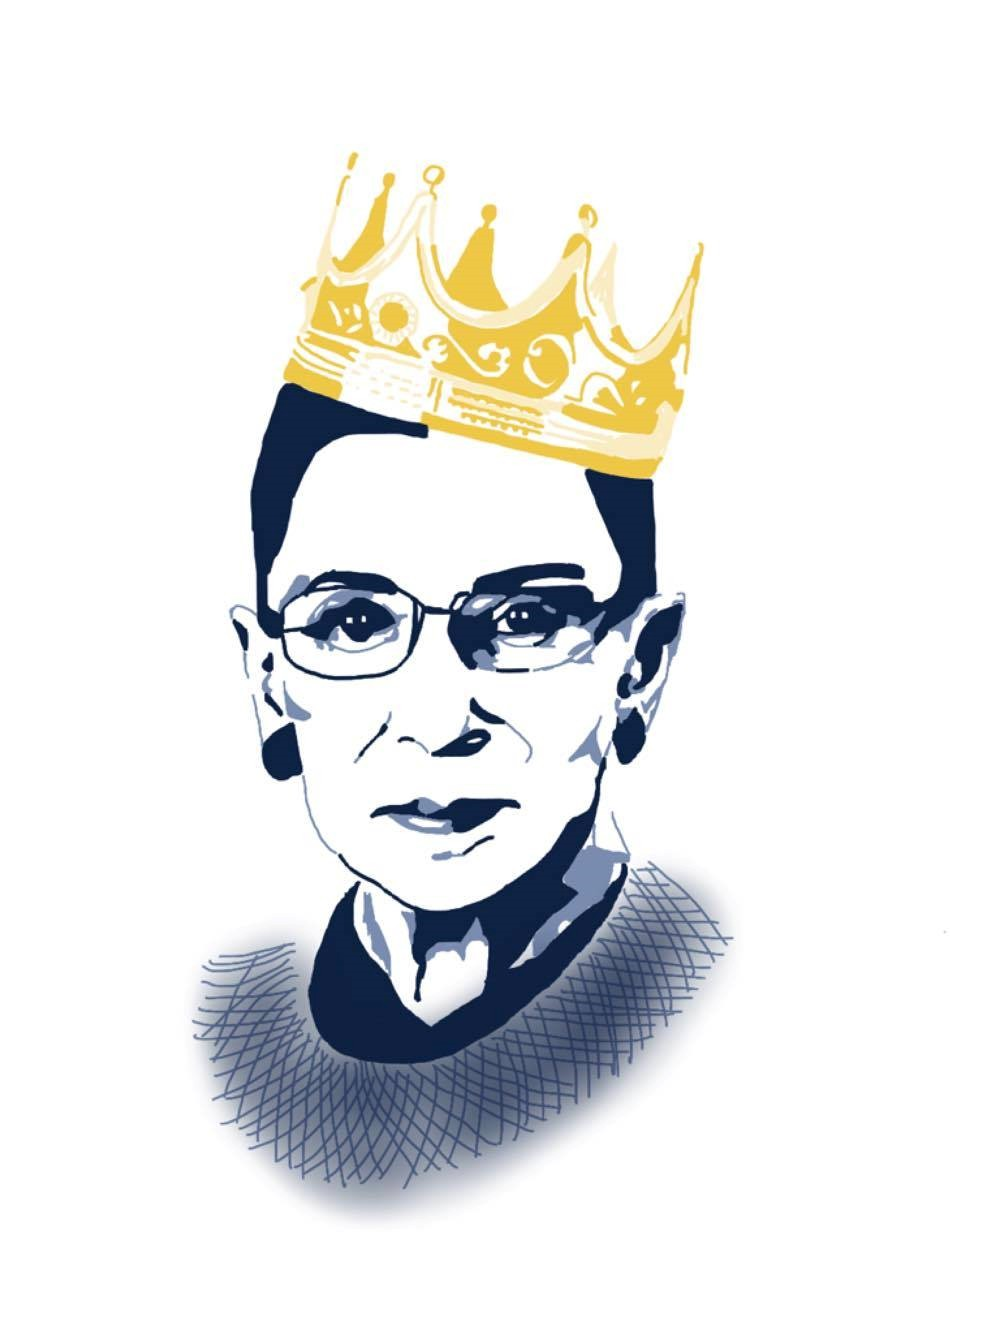 [Feb. 2017 Arts] Ruth Bader Ginsburg's autobiography reveals the mundane side of American politics